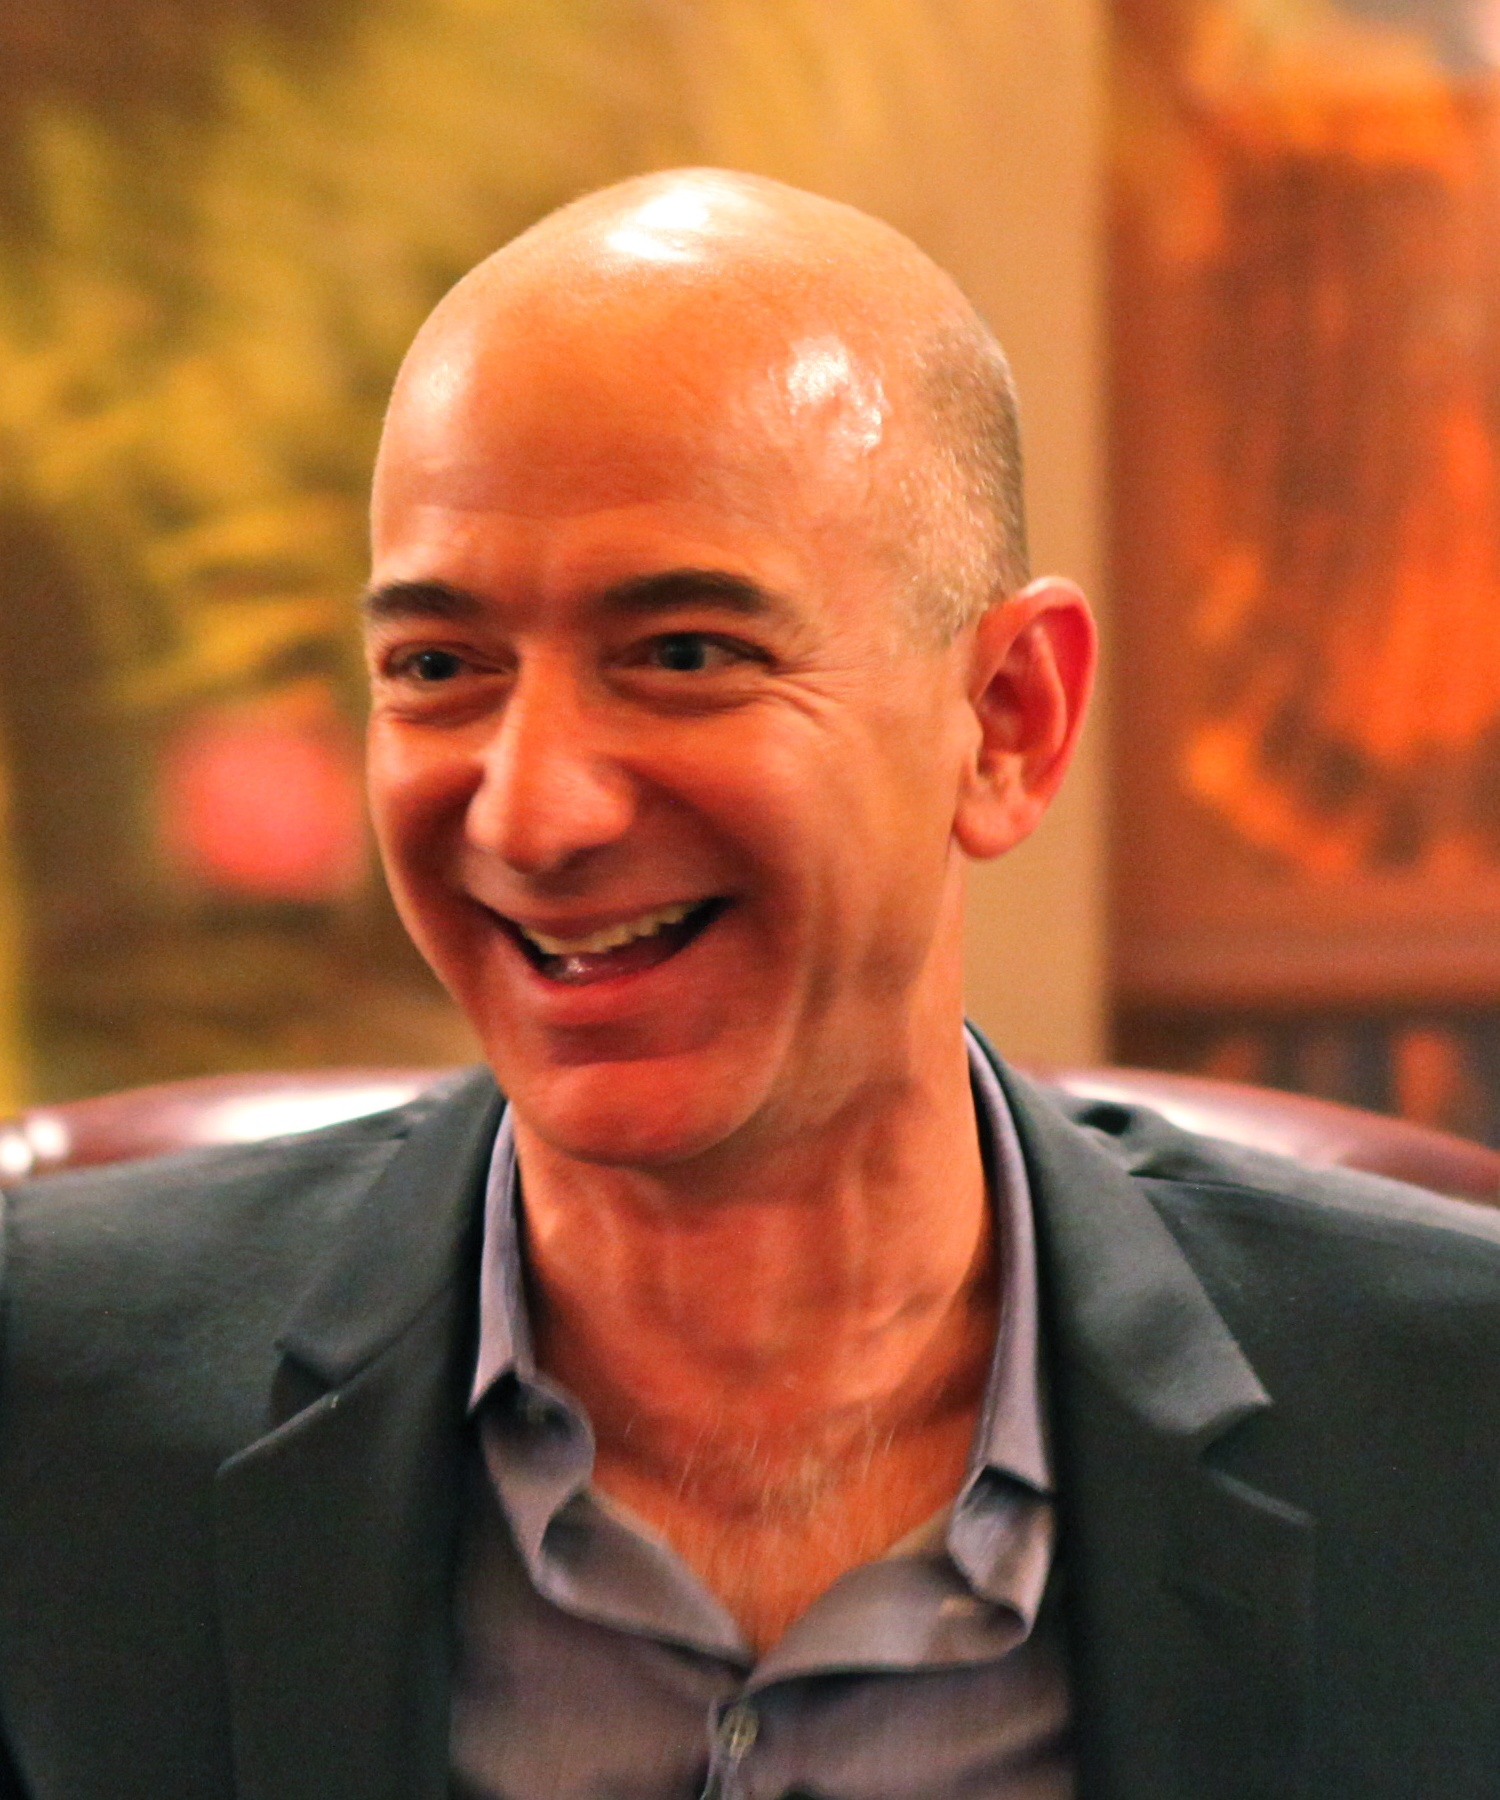 Jeff Bezos net worth